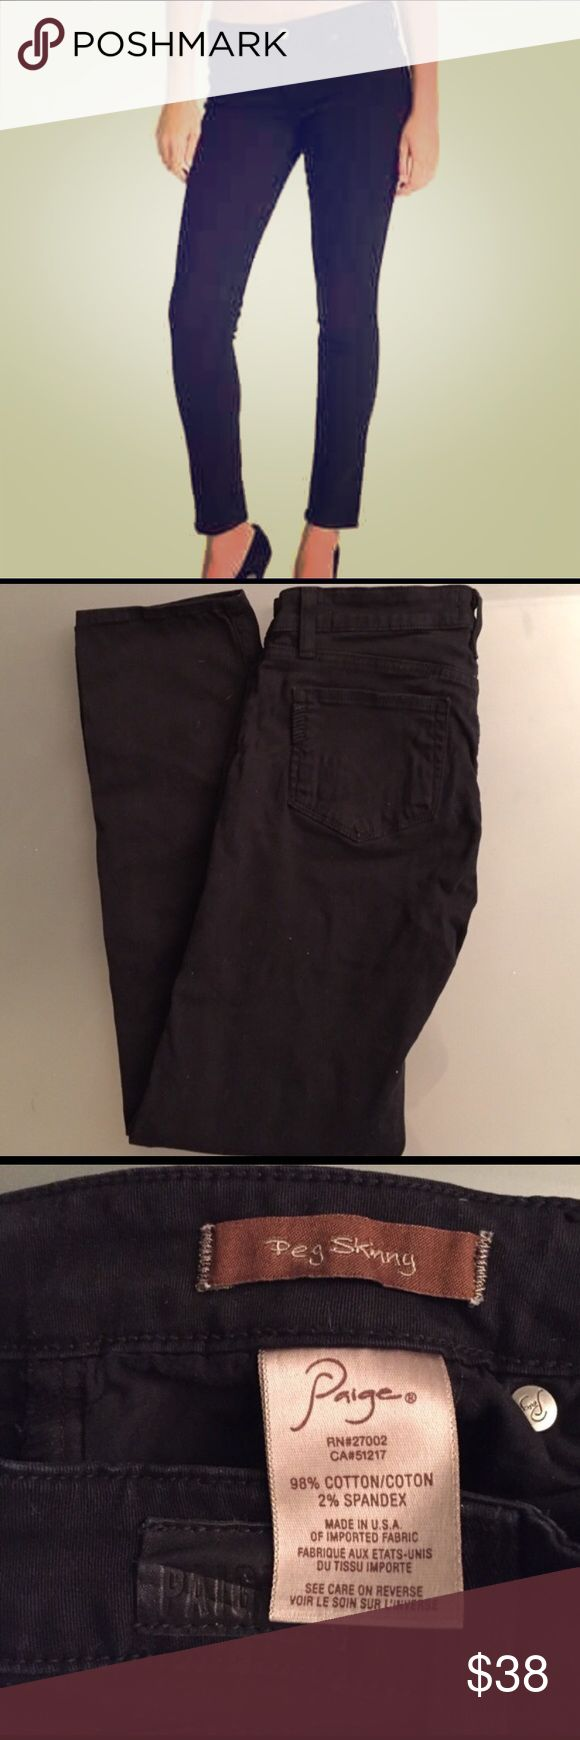 Peg Skinny Paige premium denim - black Gently worn - still in very good condition! When laid flat, the ankle opening is 6 inches across. Inseam is 27.5 inches. Paige Jeans Jeans Skinny